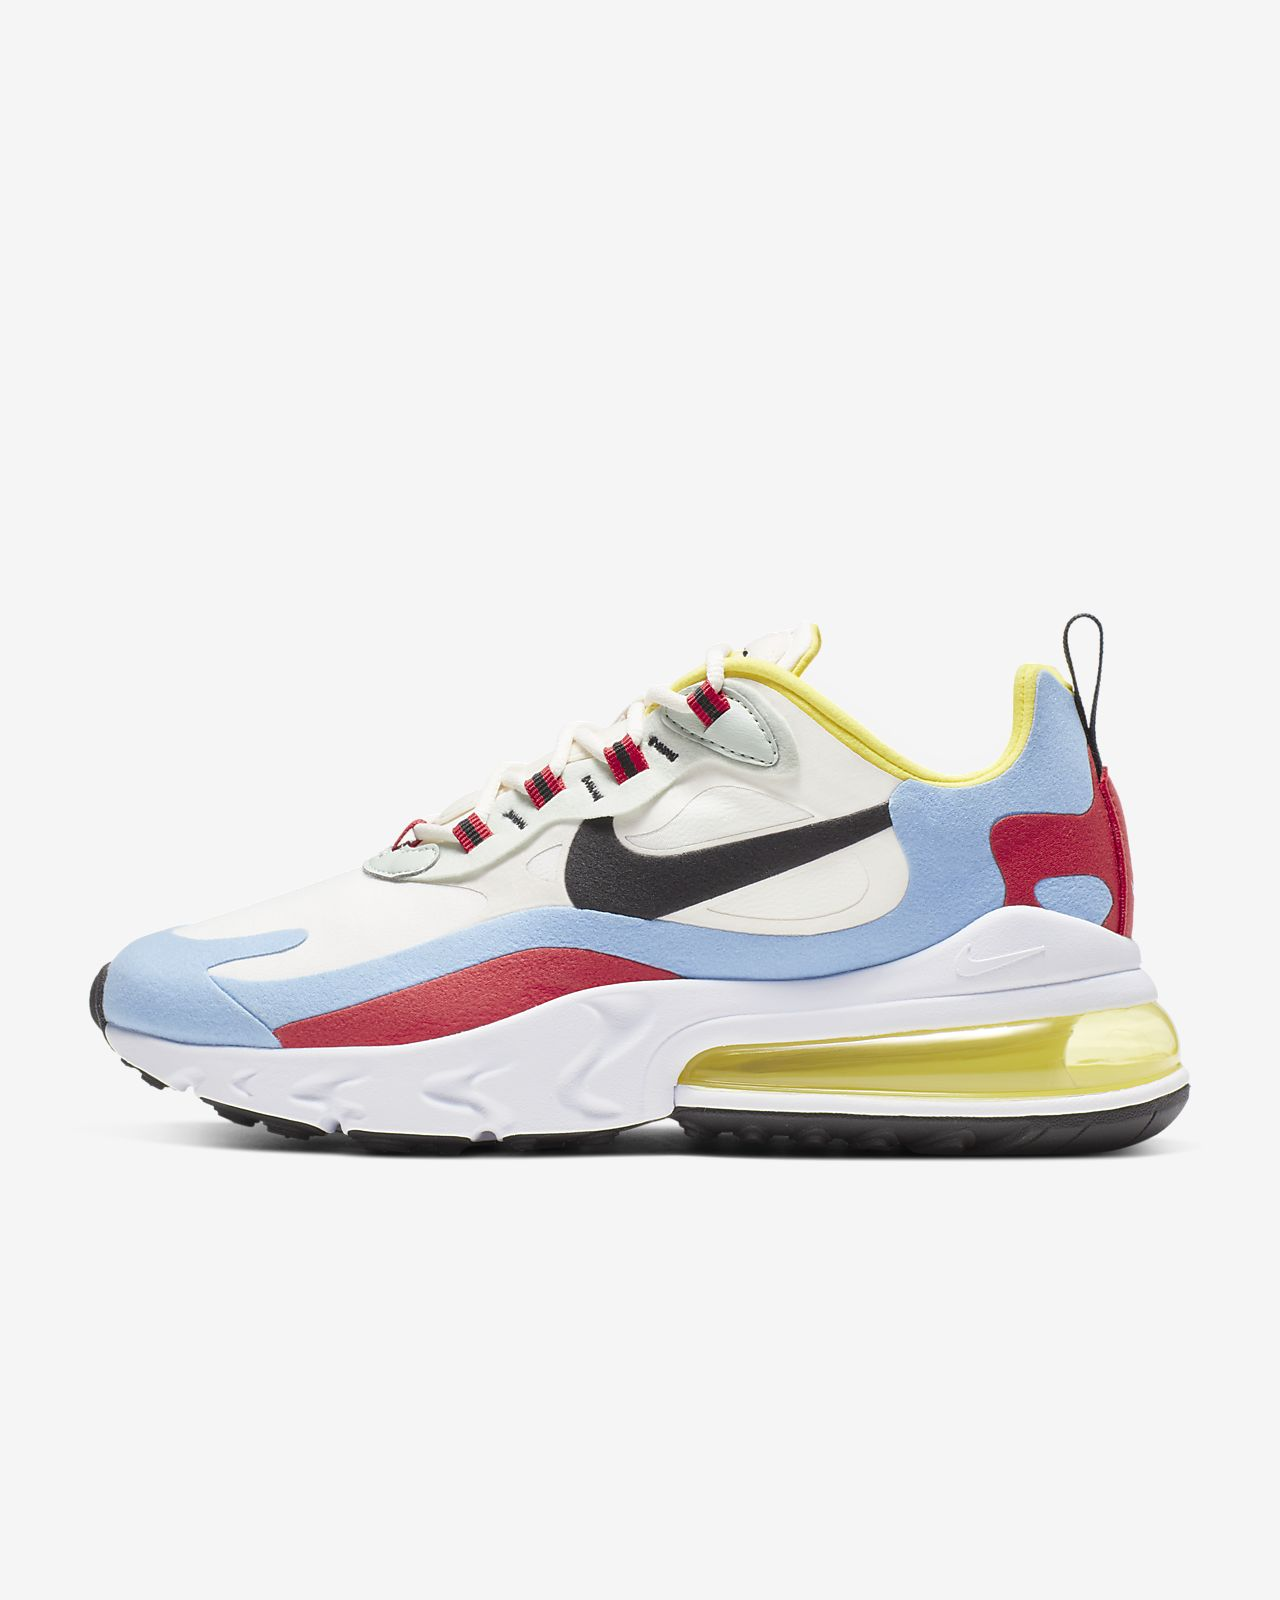 various design outlet for sale wide varieties Nike Air Max 270 React (Bauhaus) Women's Shoe